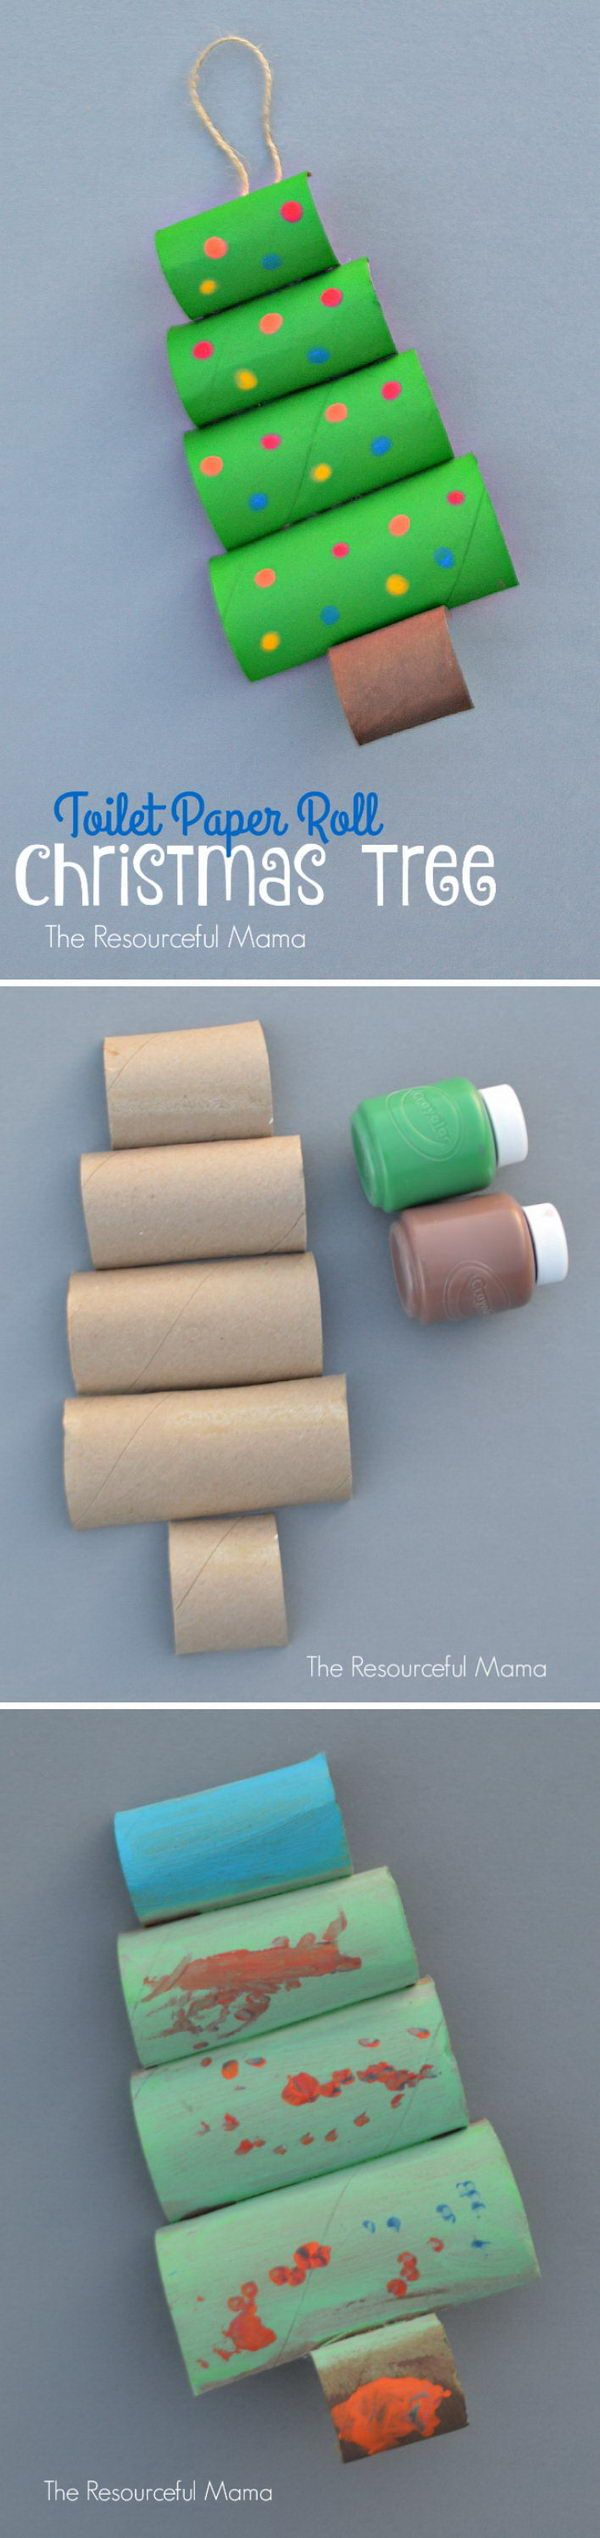 Toilet Paper Roll Christmas Tree Craft.